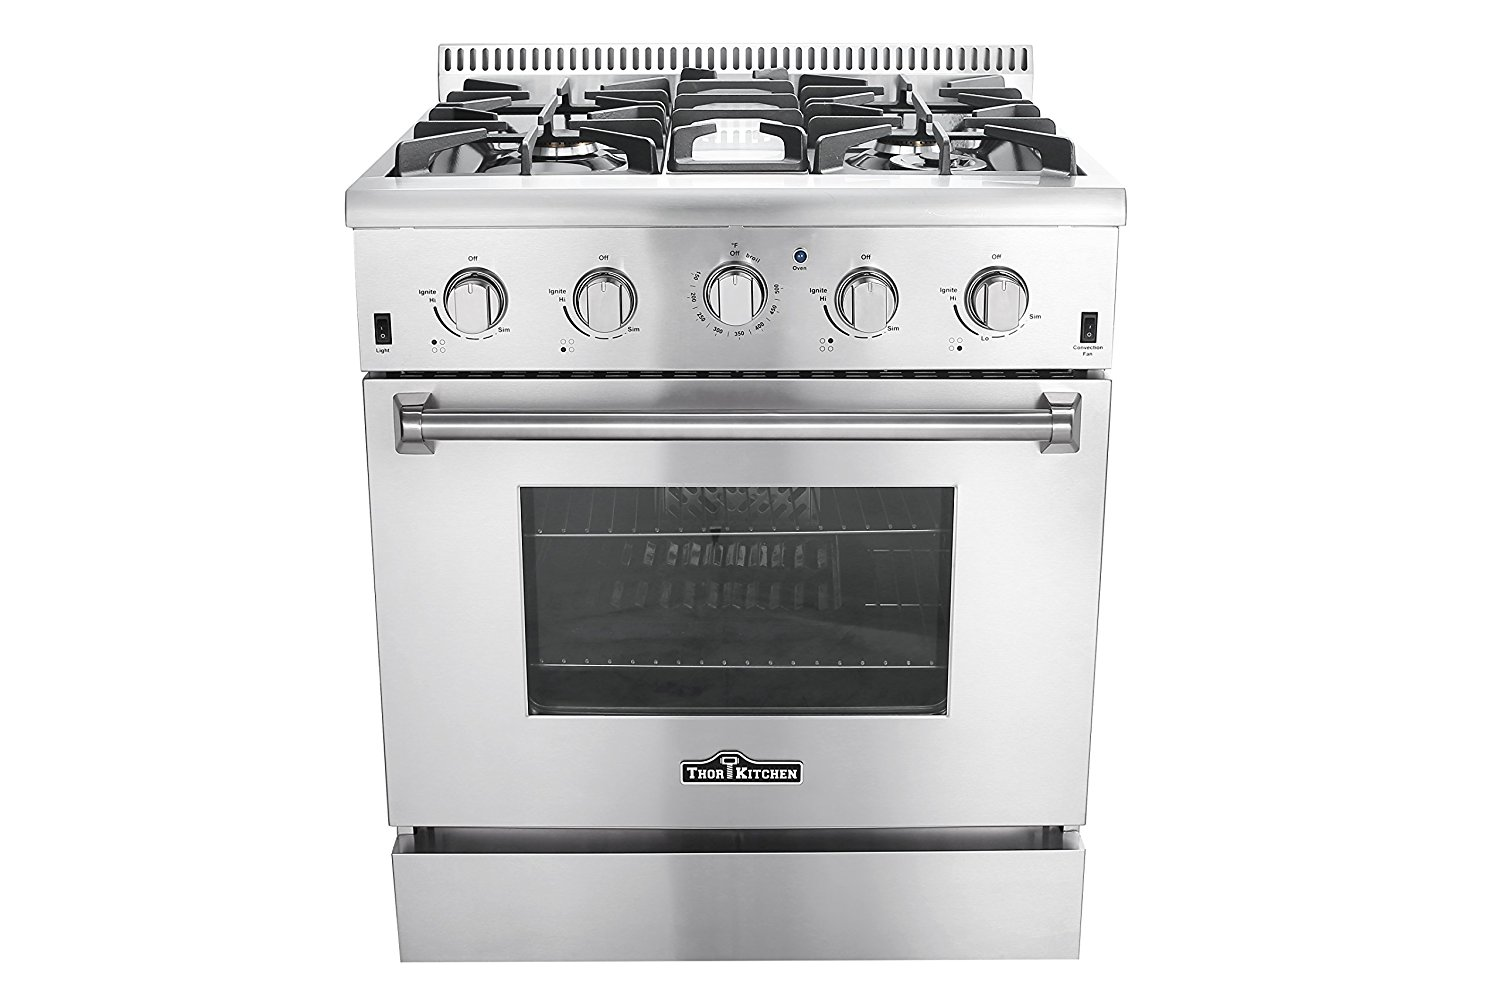 30 In 42 Cu Ft Stainless Steel Gas Range With Convection. Kitchen Designs London. Kitchen Design Calgary. Dream Kitchen Designs. Farm Kitchen Design. Design Kitchen Cabinets. Kitchen Design Green. Kitchen Designs For Small Spaces Pictures. Kitchen Design Video